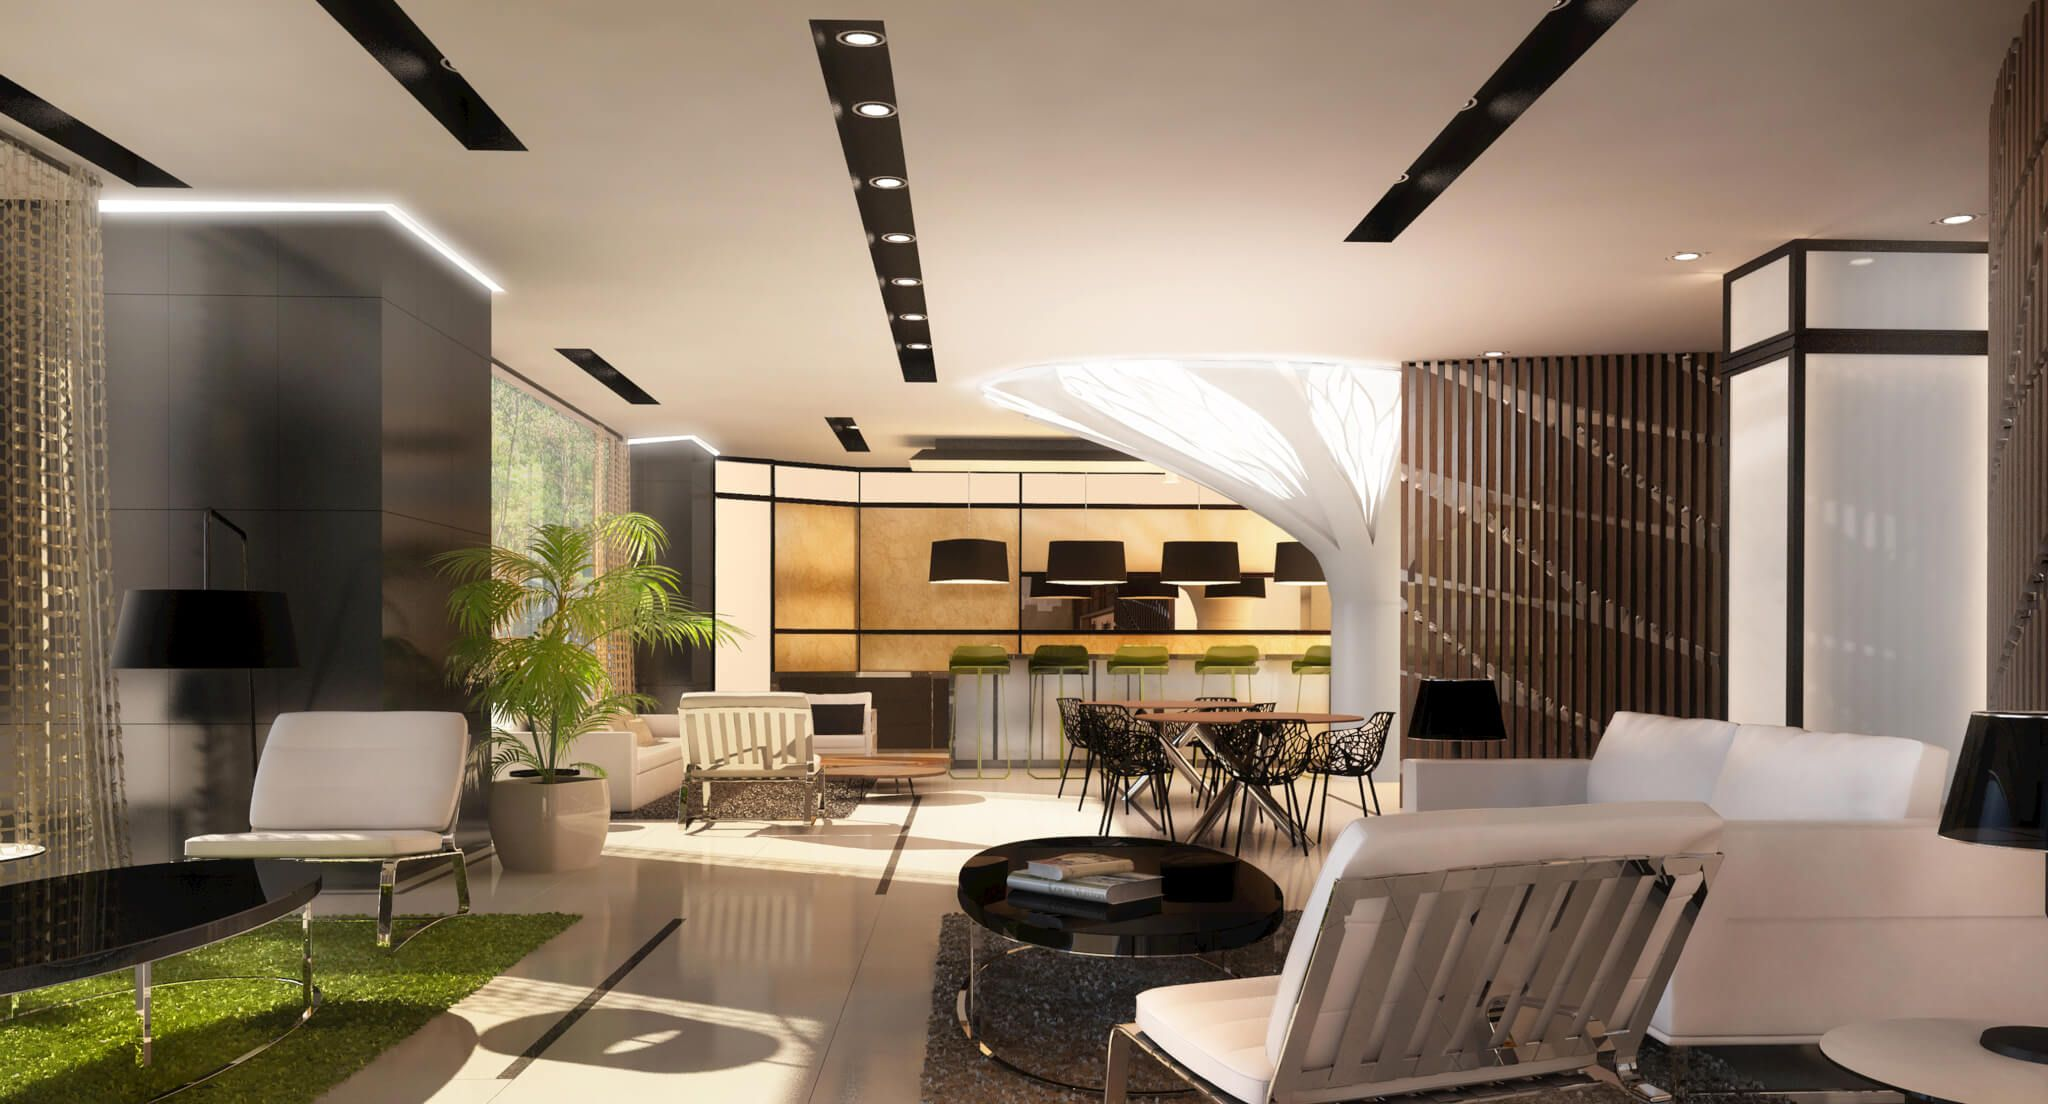 Malaysia hotel interiors characterised by stylish, sophisticated and ...